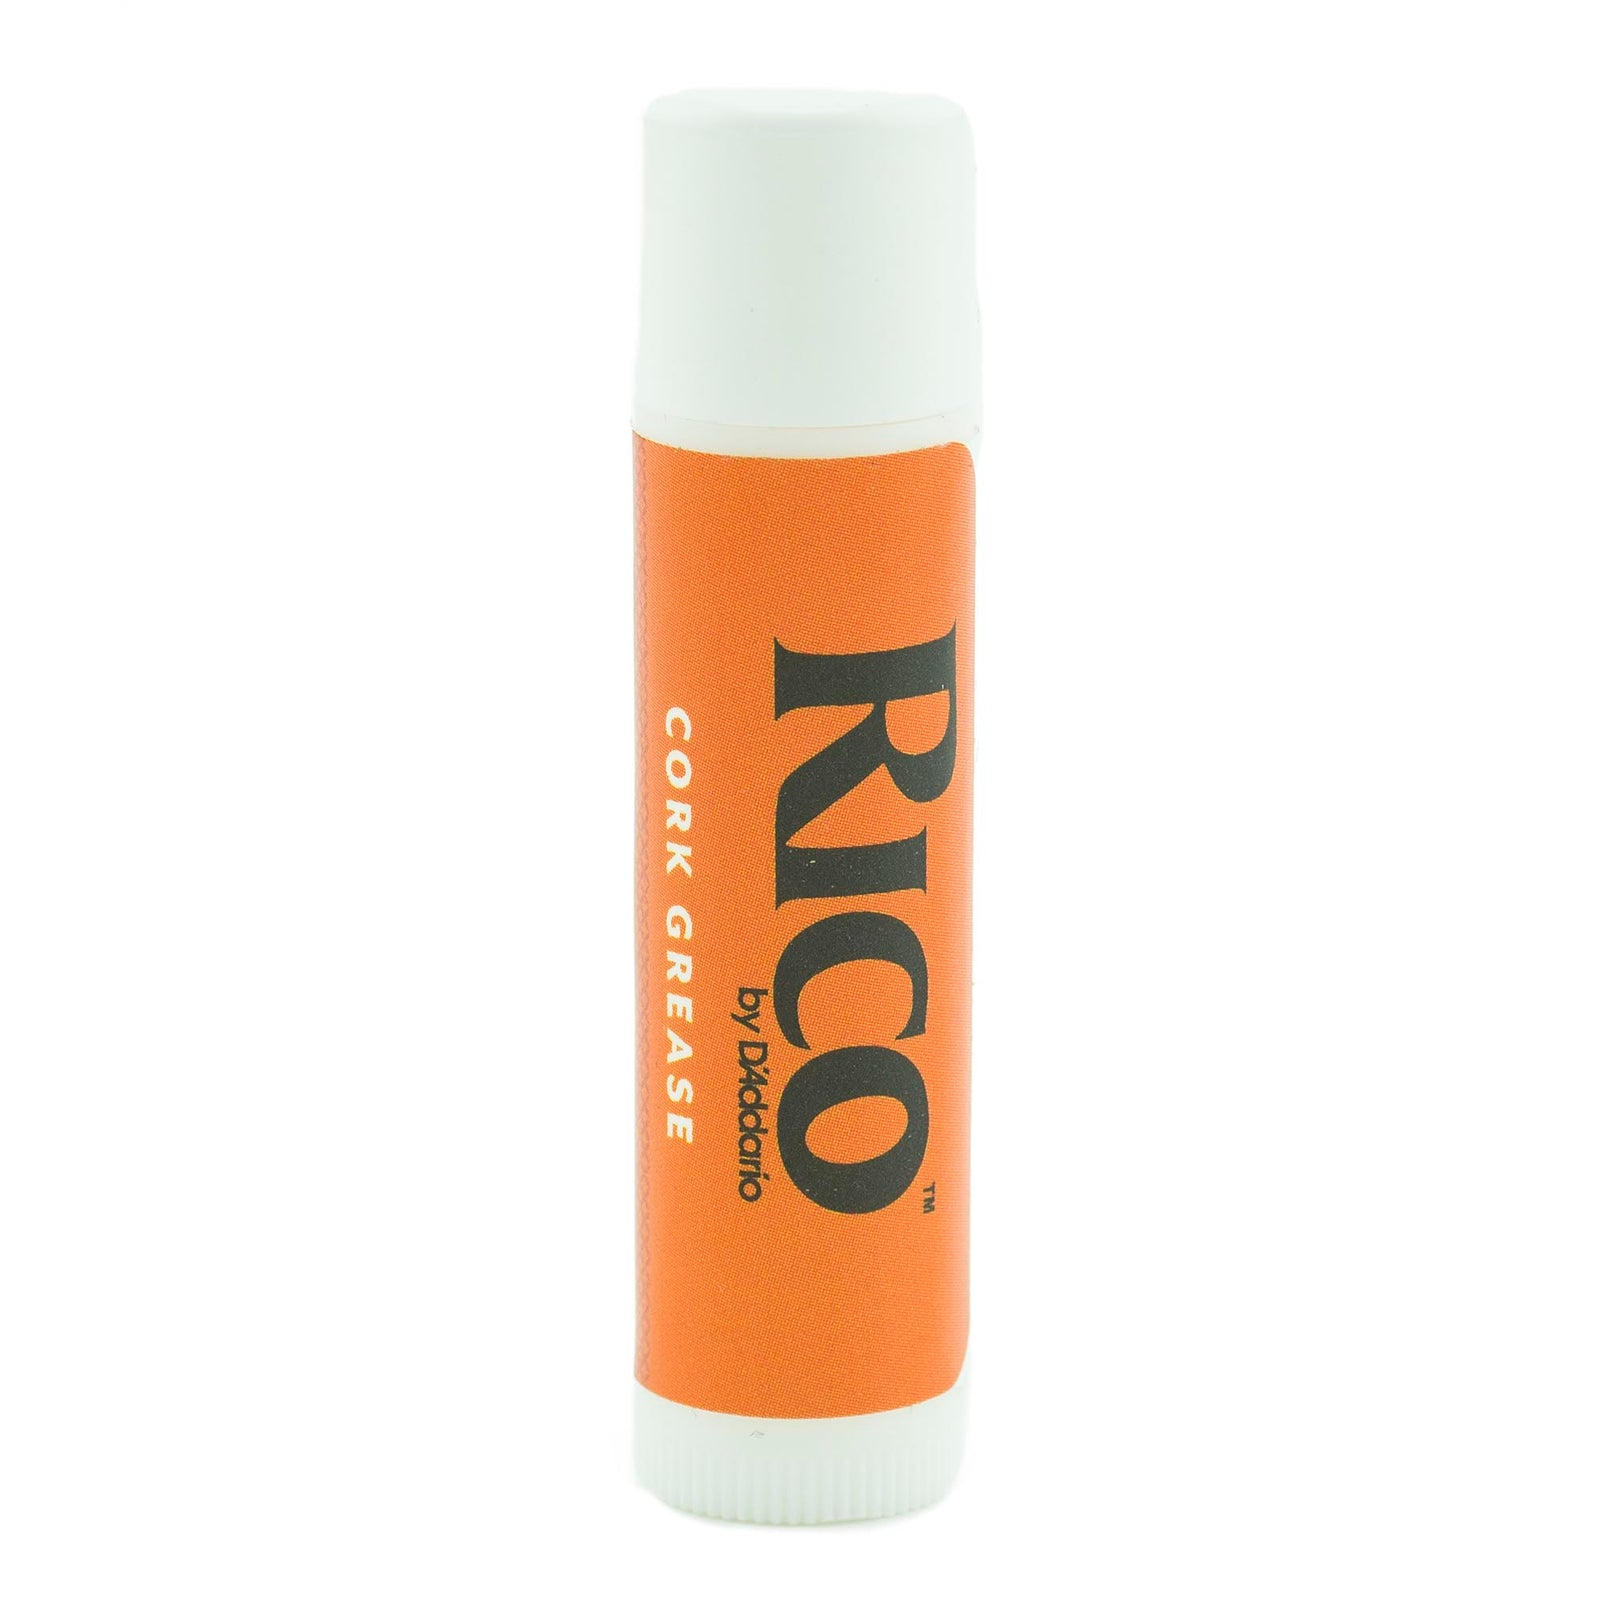 Rico by D'addario Cork Grease